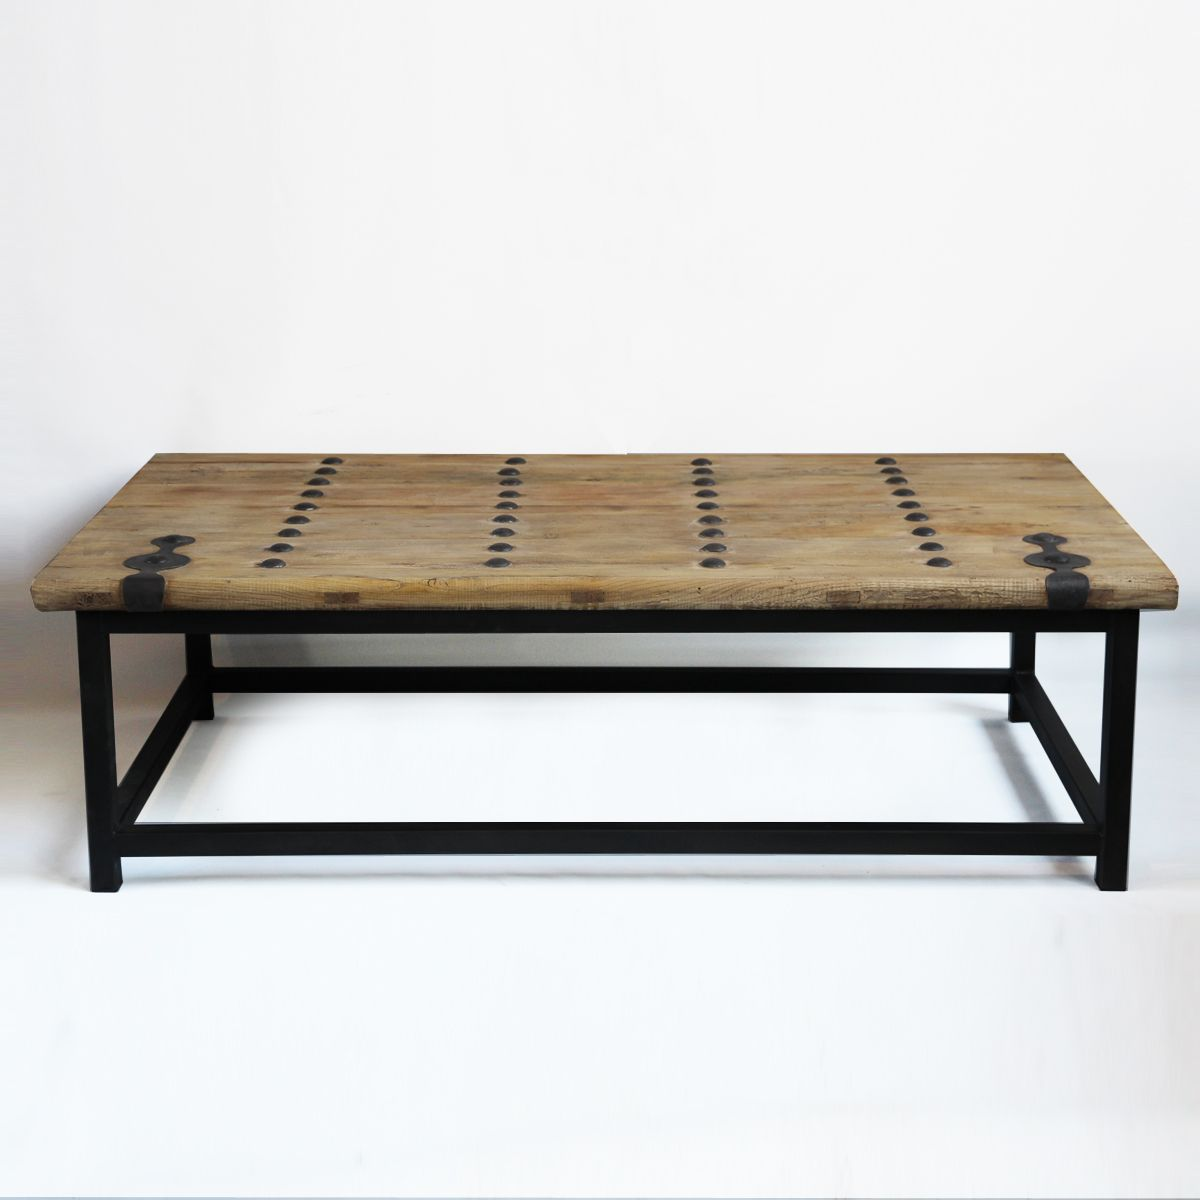 Check Out Our Rustic Coffee Tables At Mix Furniture Old Elm Wood Solid Coffee Table With Iron Details And Coffee Table Solid Coffee Table Rustic Coffee Tables